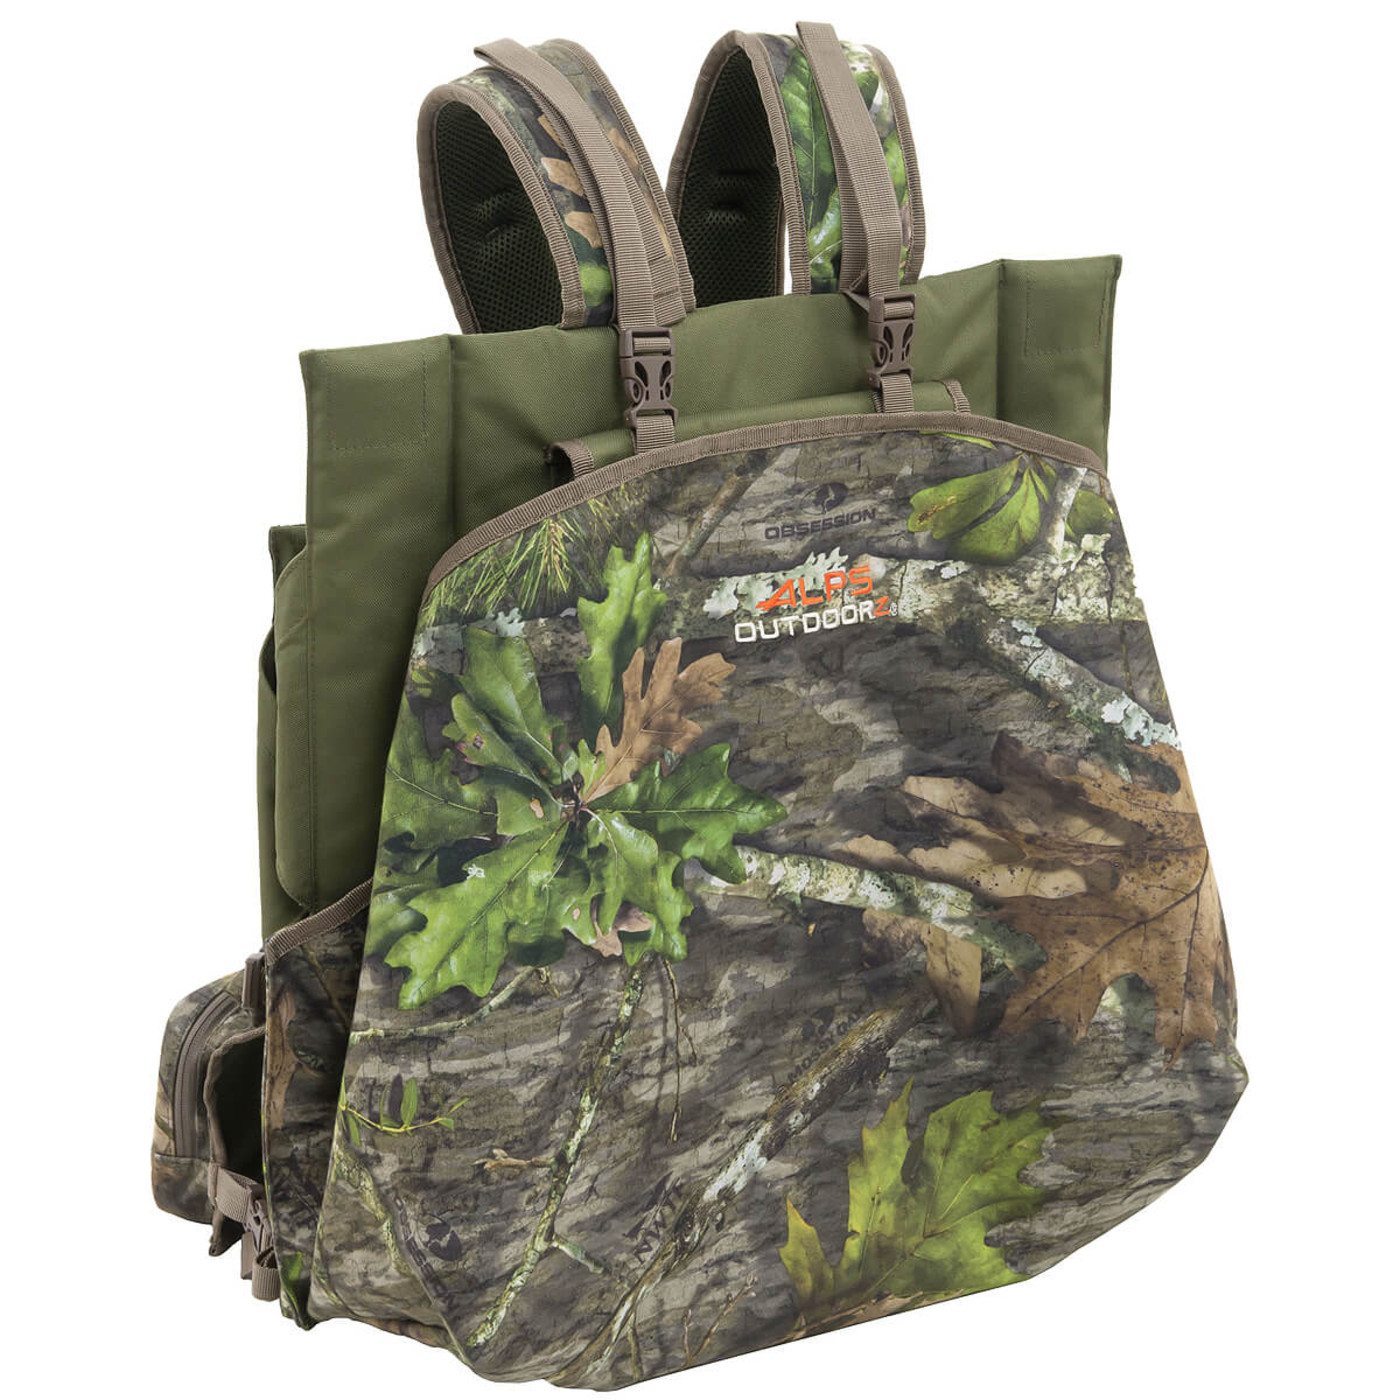 Alps Outdoorz NWTF Impact Vest - Standard in Mossy Oak Obsession Color